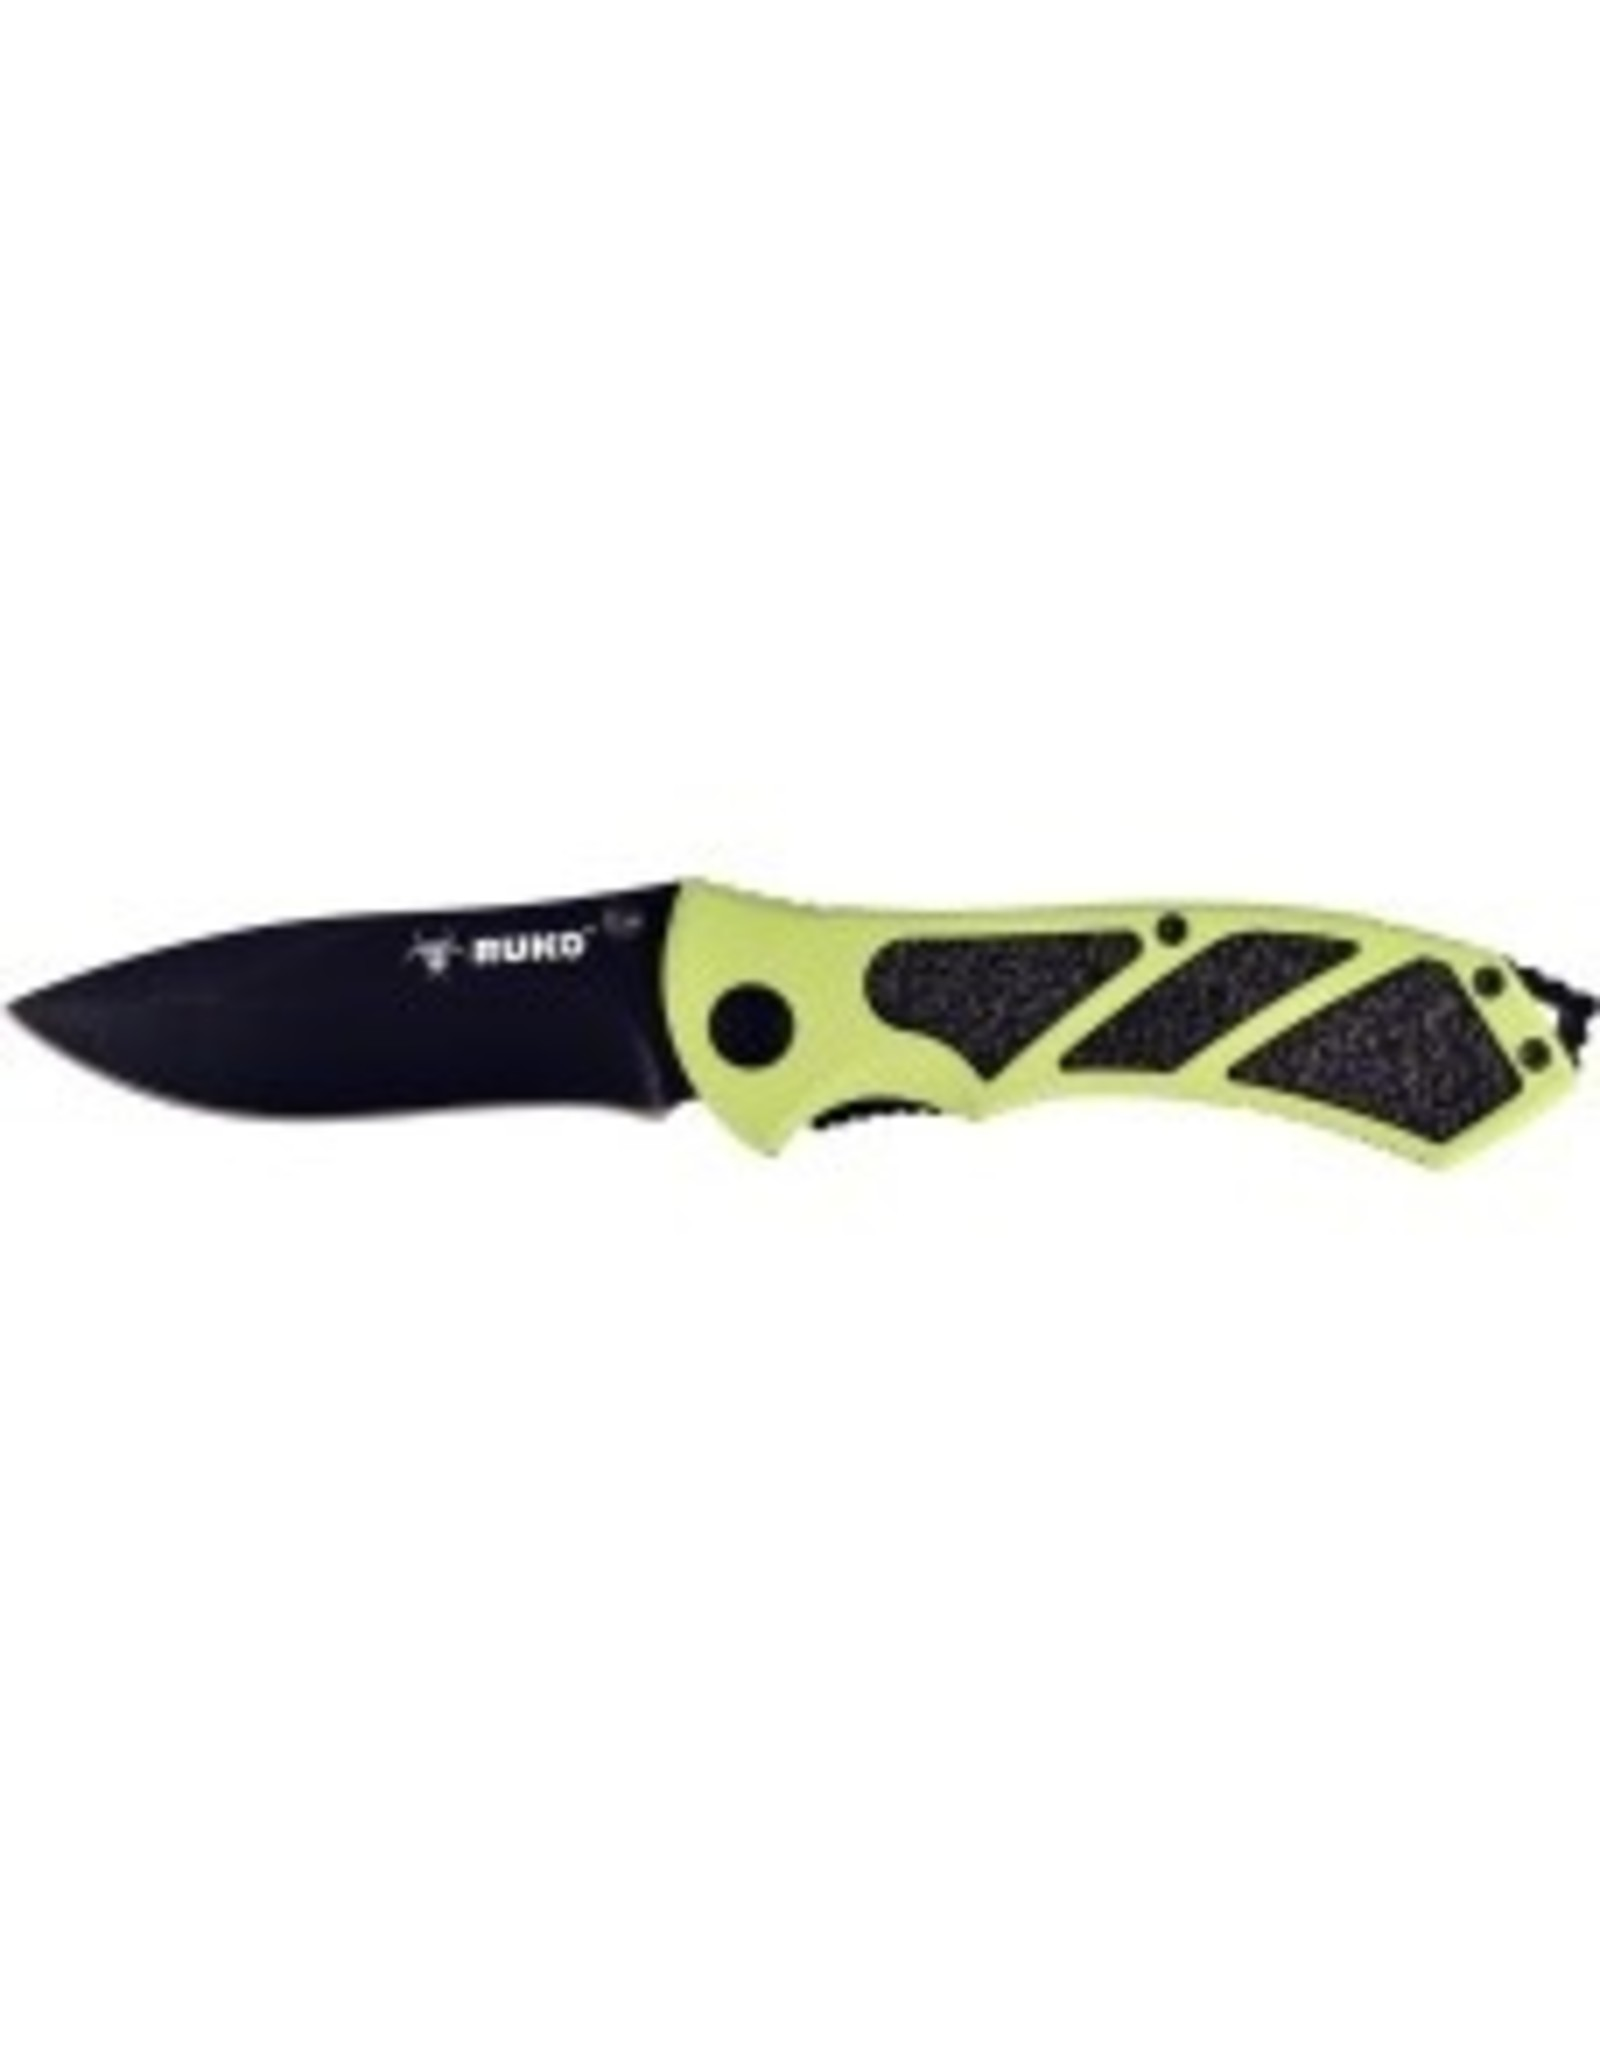 RUKO KNIVES RUKO 0061HG SAFETY GREEN FOLDER